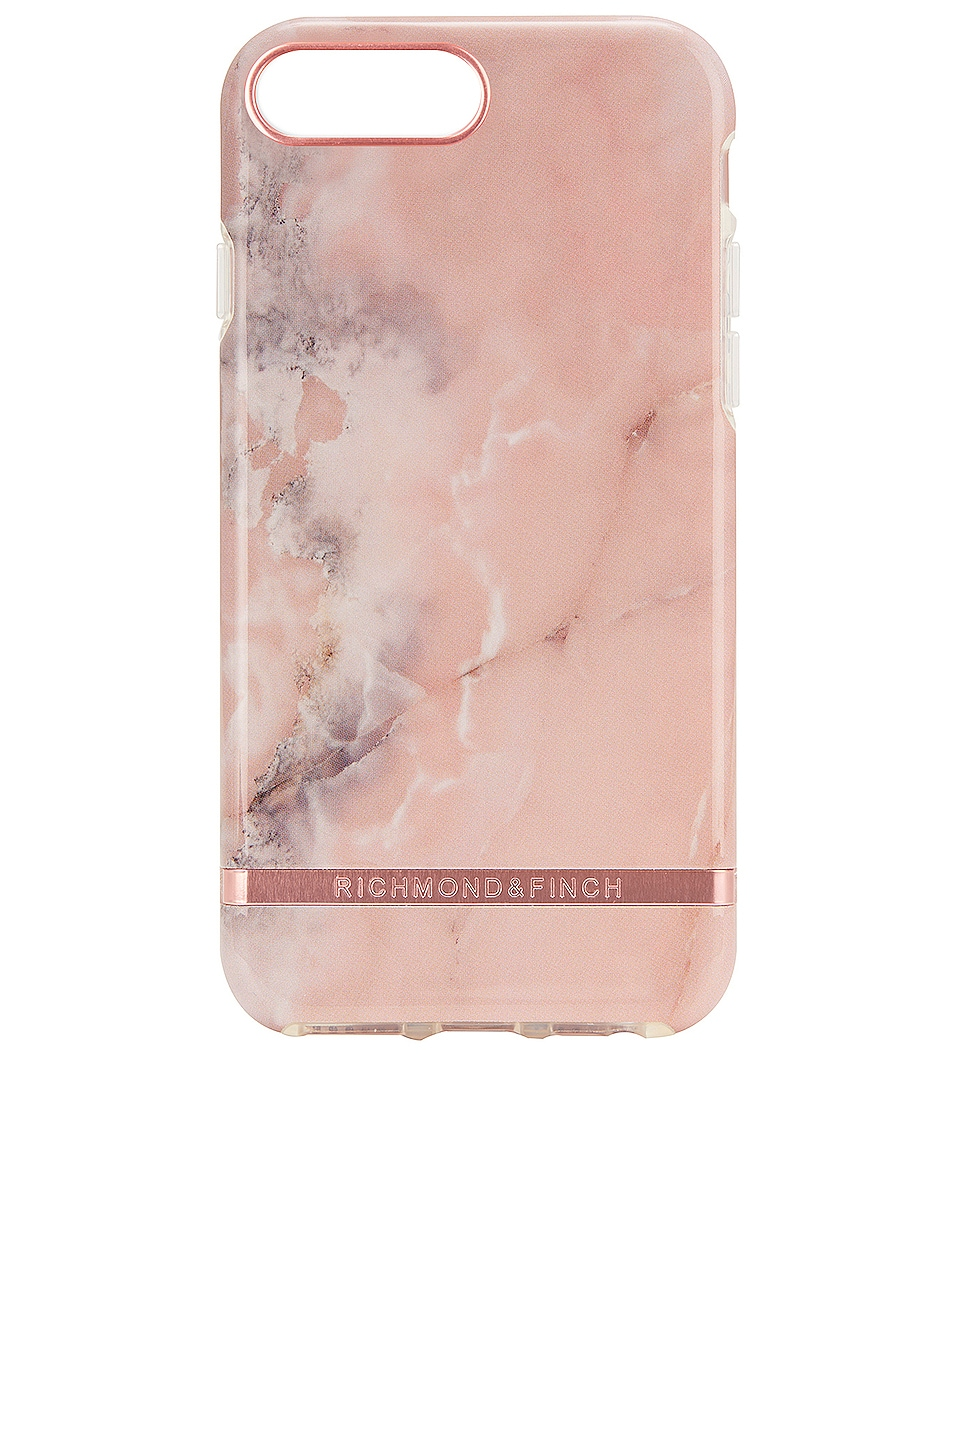 Richmond & Finch Pink Marble iPhone 6/7/8 Plus Case in Pink Marble